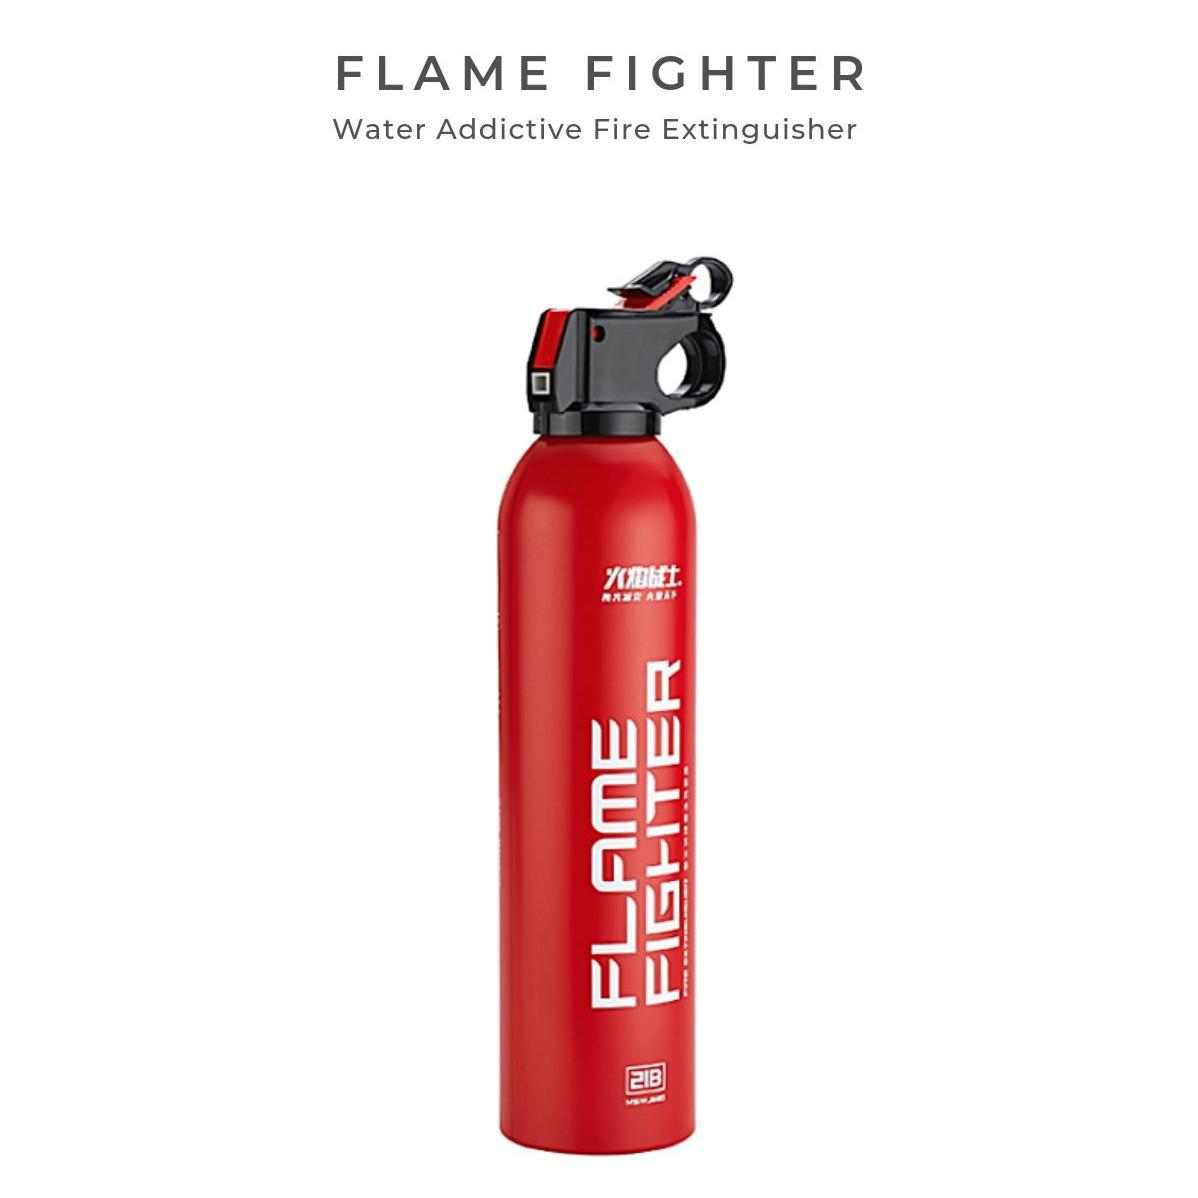 Flame Fighter Water Additive Fire Extinguisher